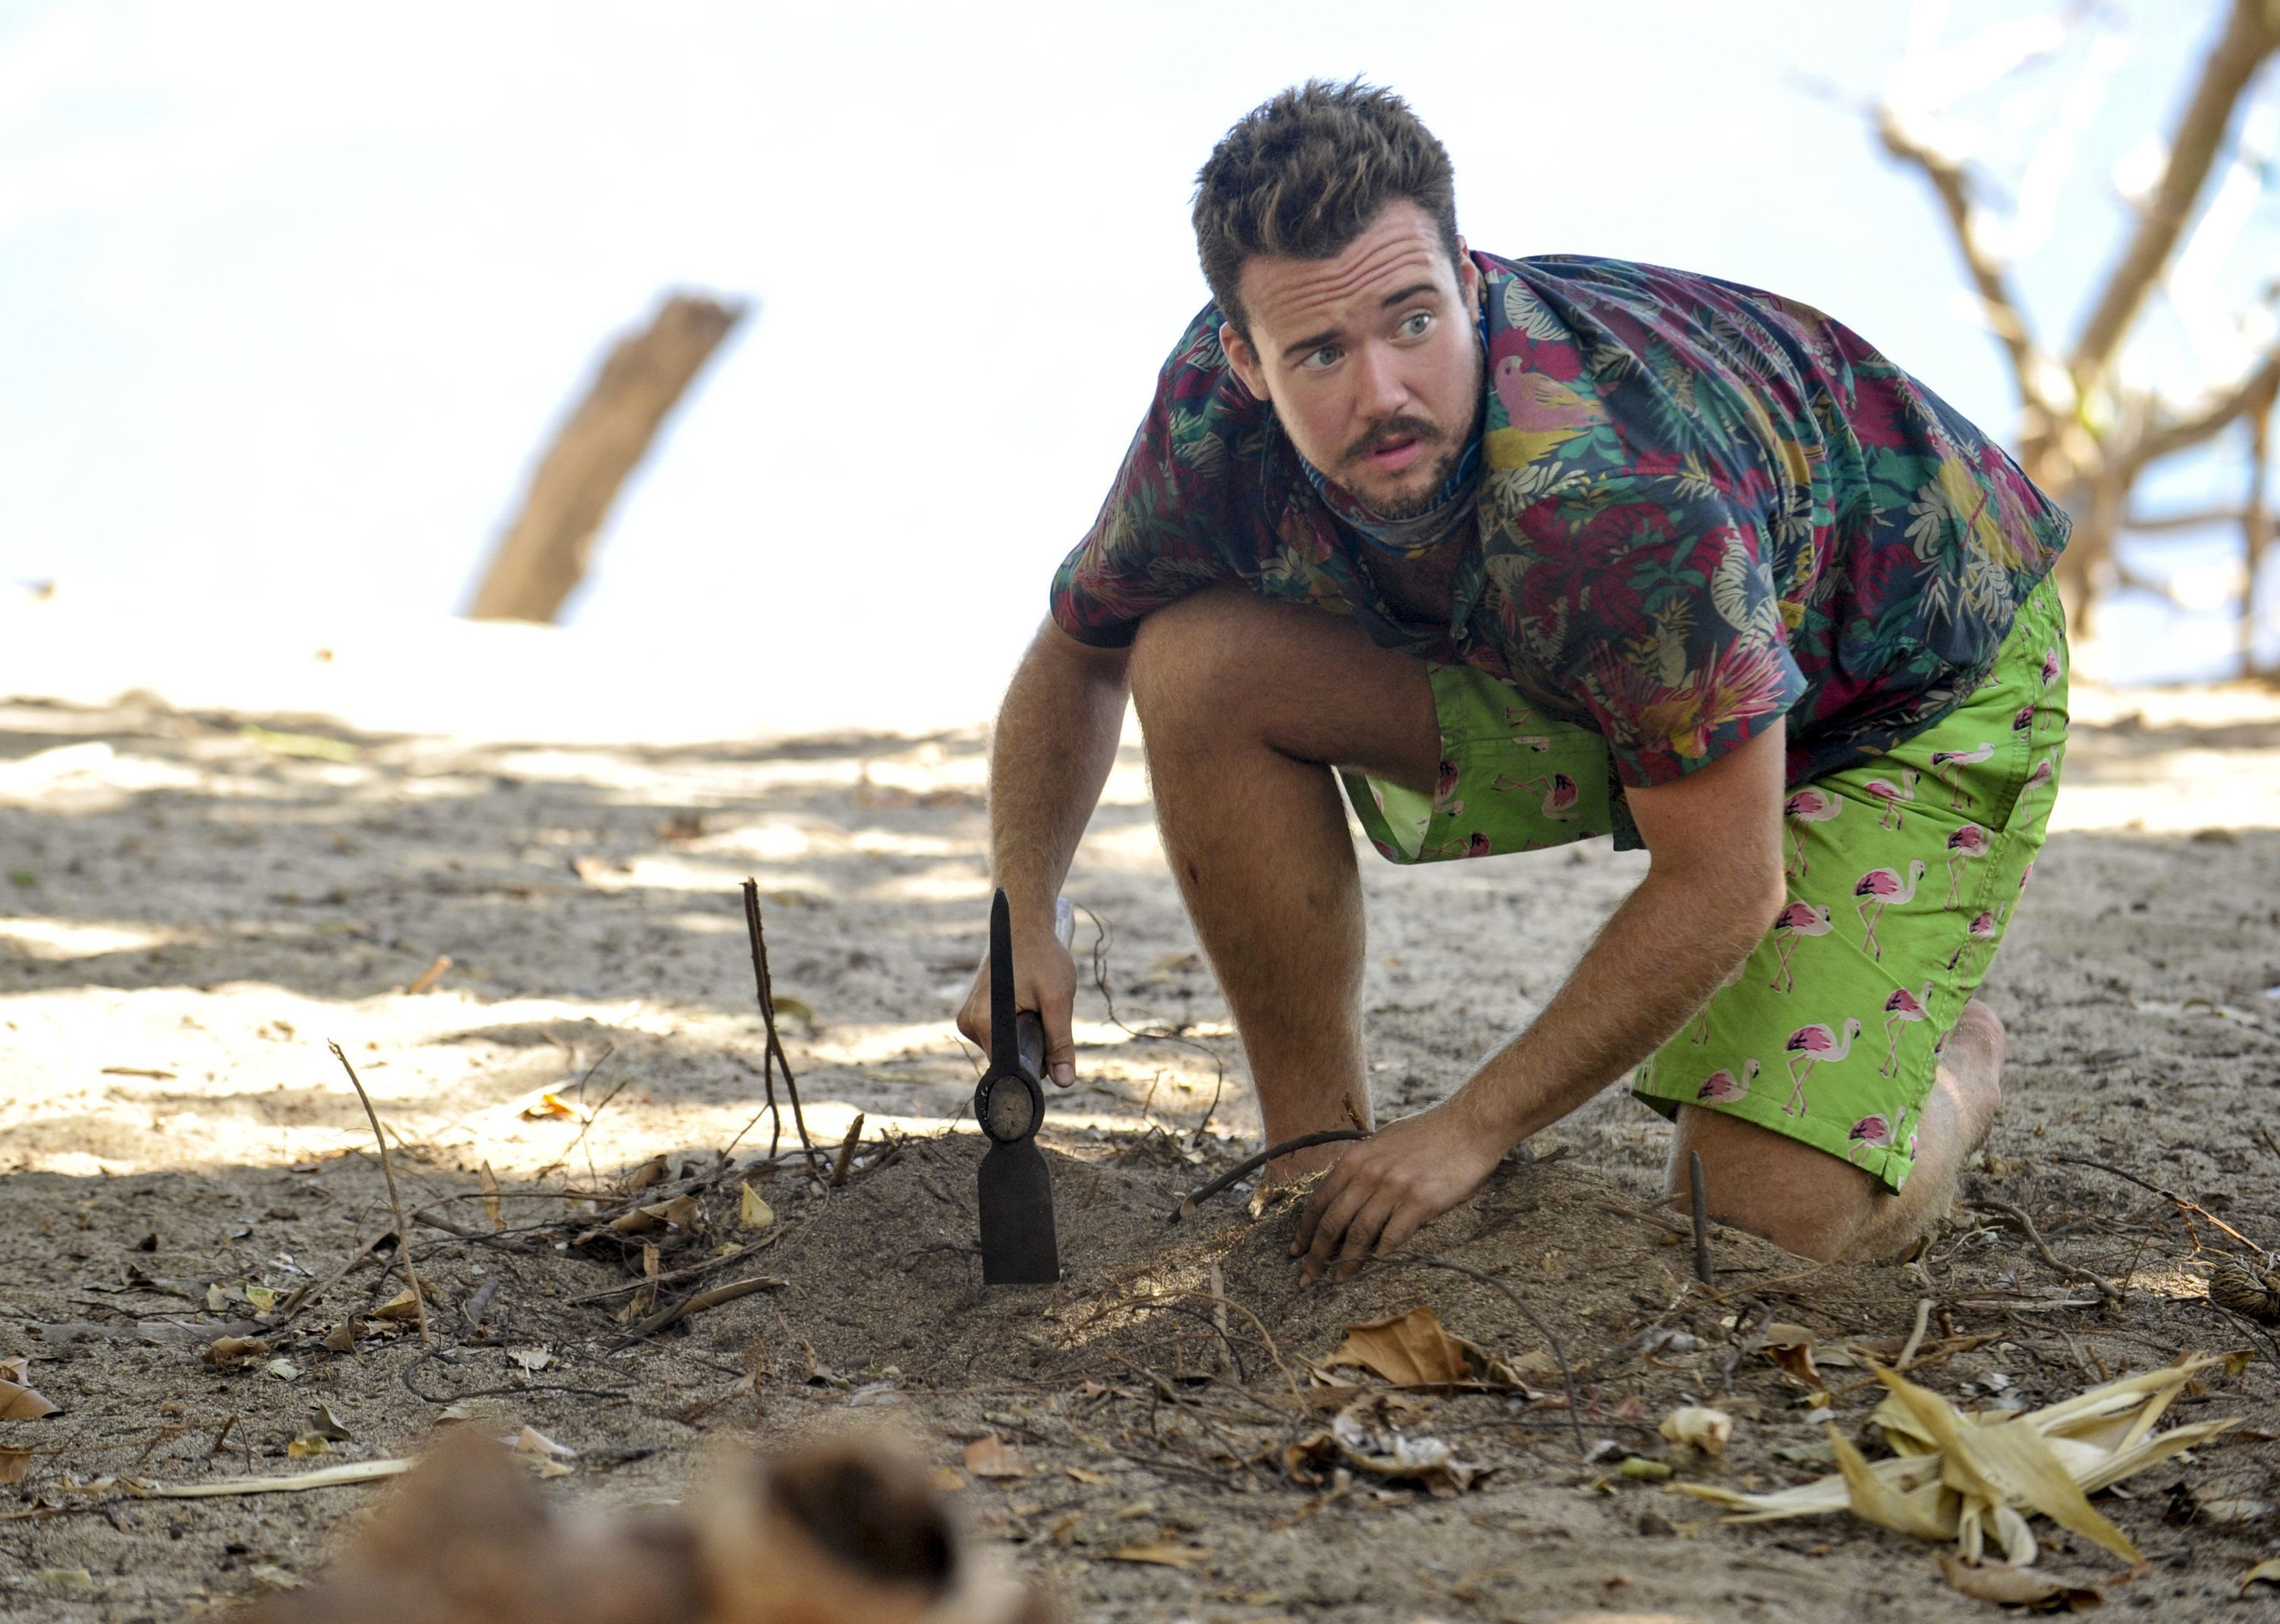 MANA ISLAND - JUNE 21: 'What Happened on Exile, Stays on Exile' - Zeke Smith on the seventh episode of SURVIVOR: Game Changers, airing Wednesday, April 12 (8:00-9:00 PM, ET/PT) on the CBS Television Network. (Photo By Jeffrey Neira/CBS via Getty Images)